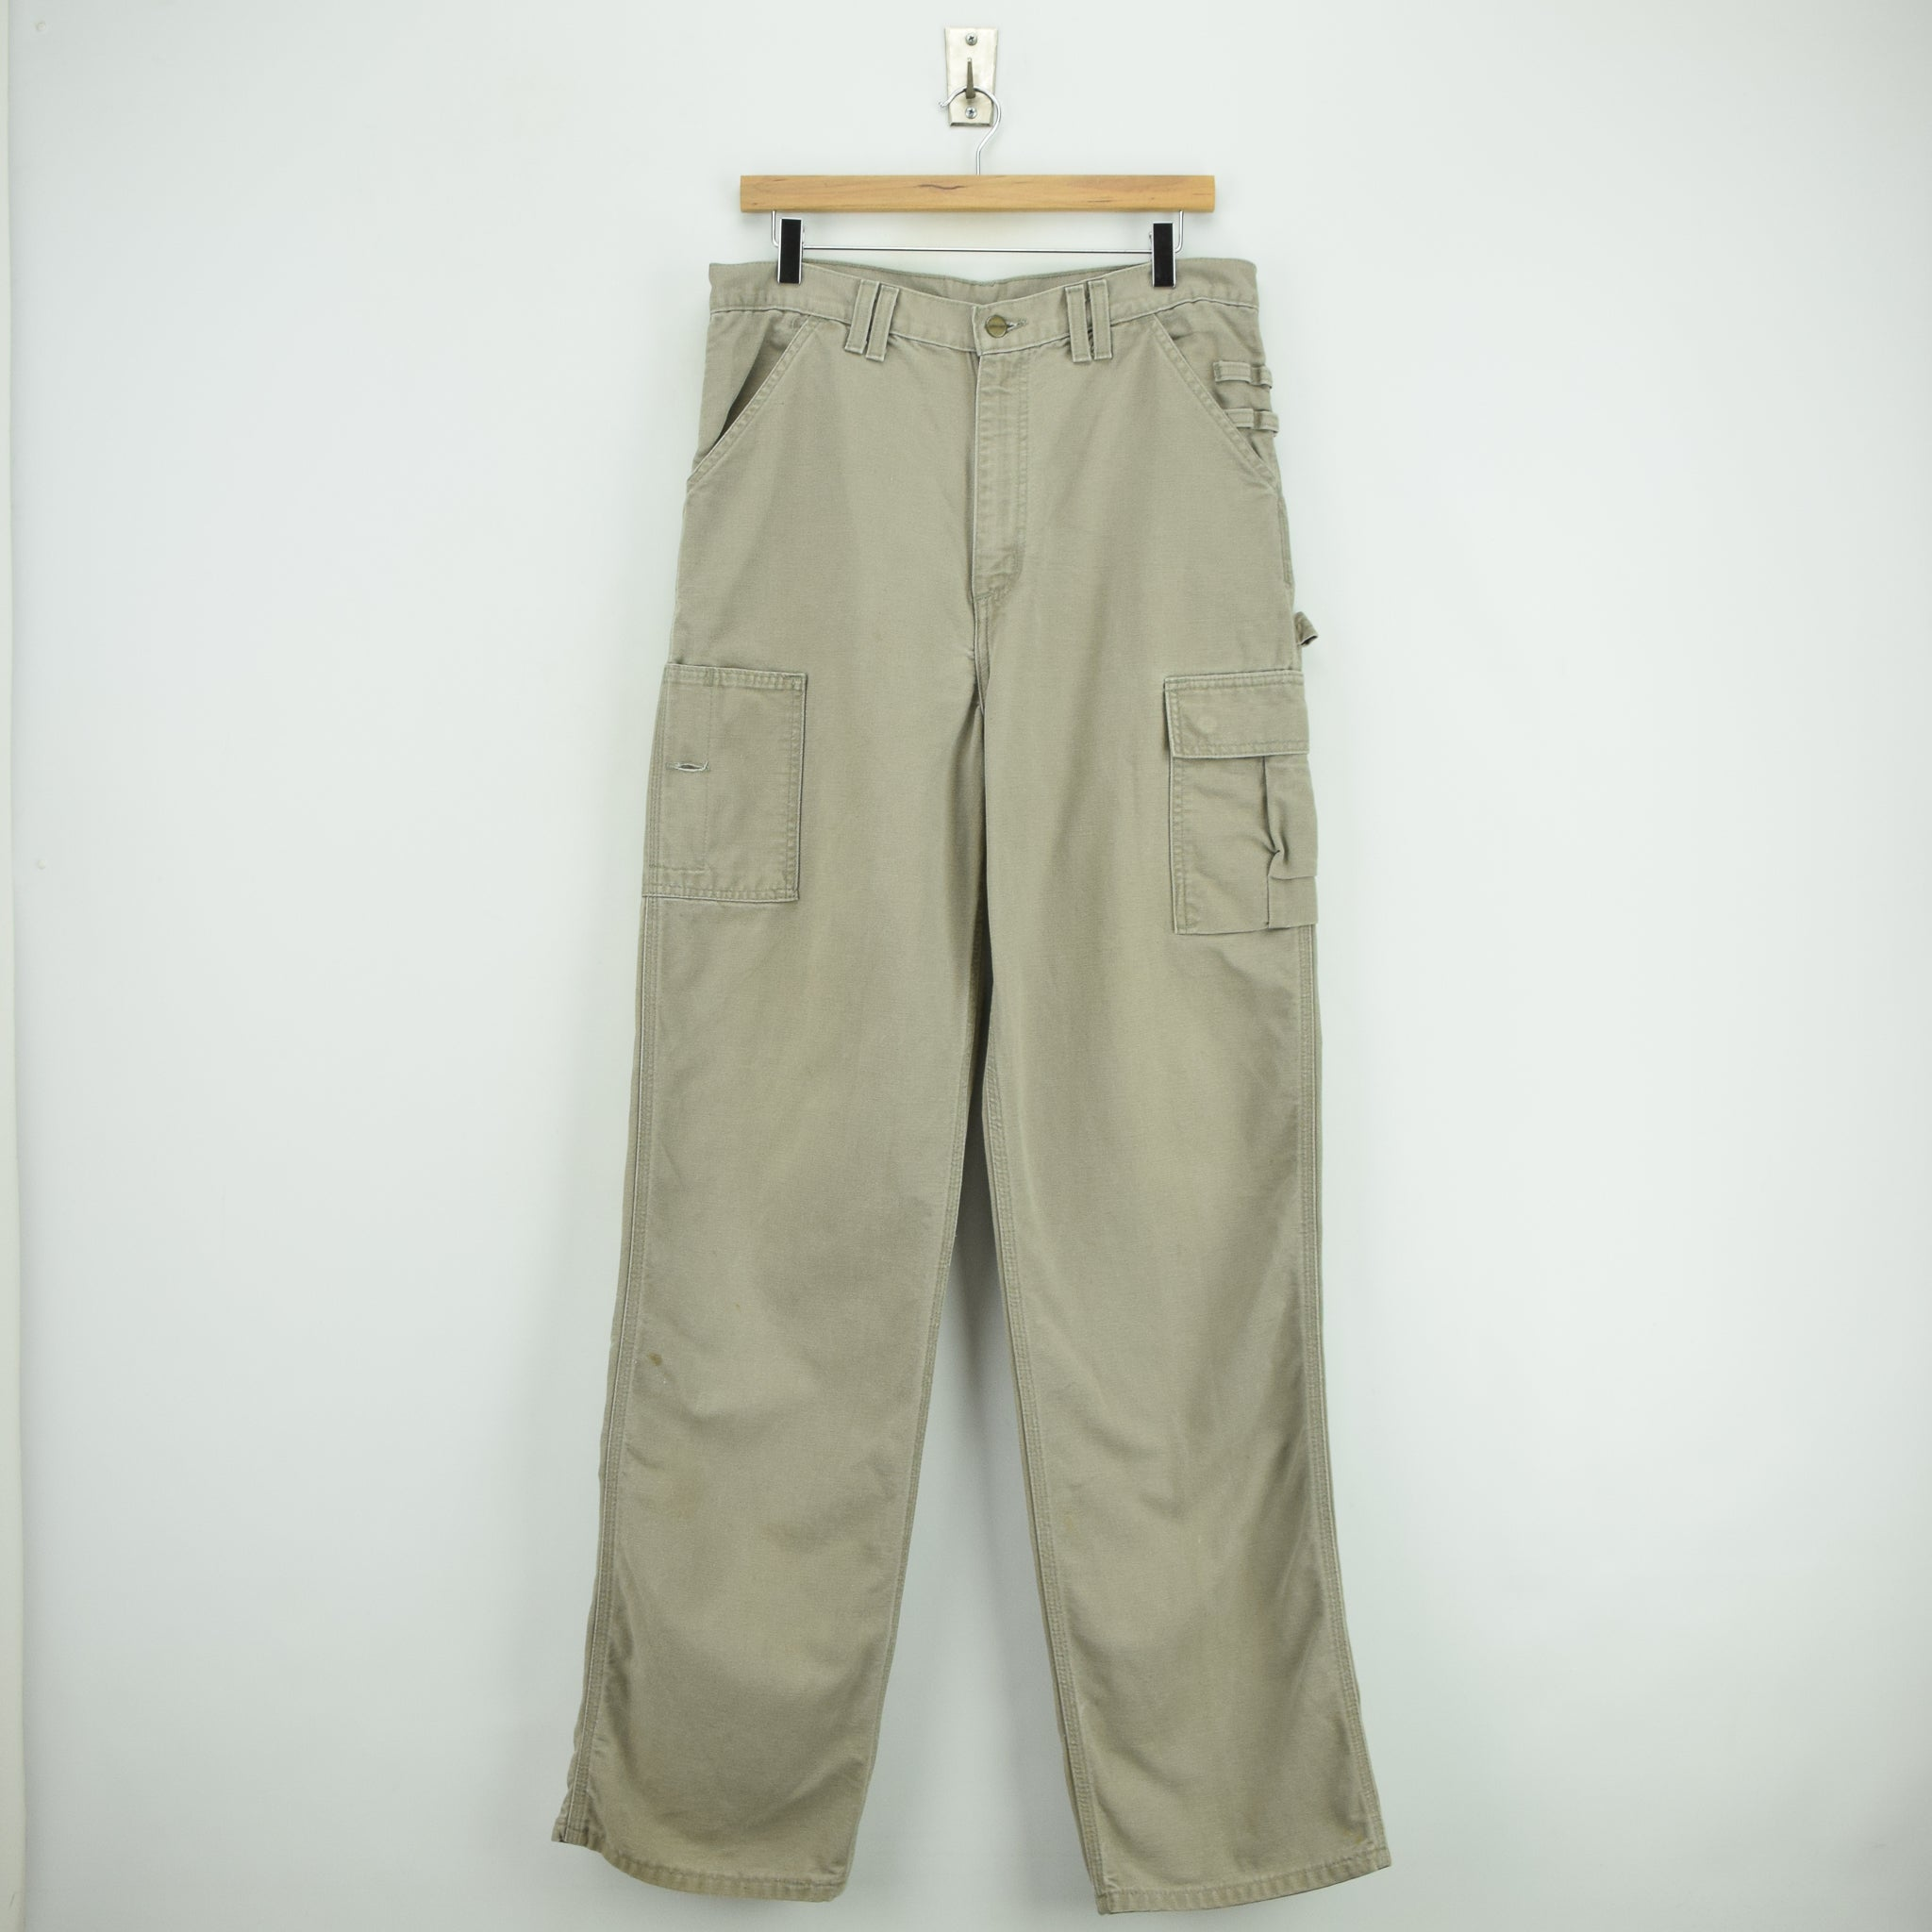 Vintage Carhartt Stone Duck Canvas Utility Work Cargo Pant 32 W 34 L front